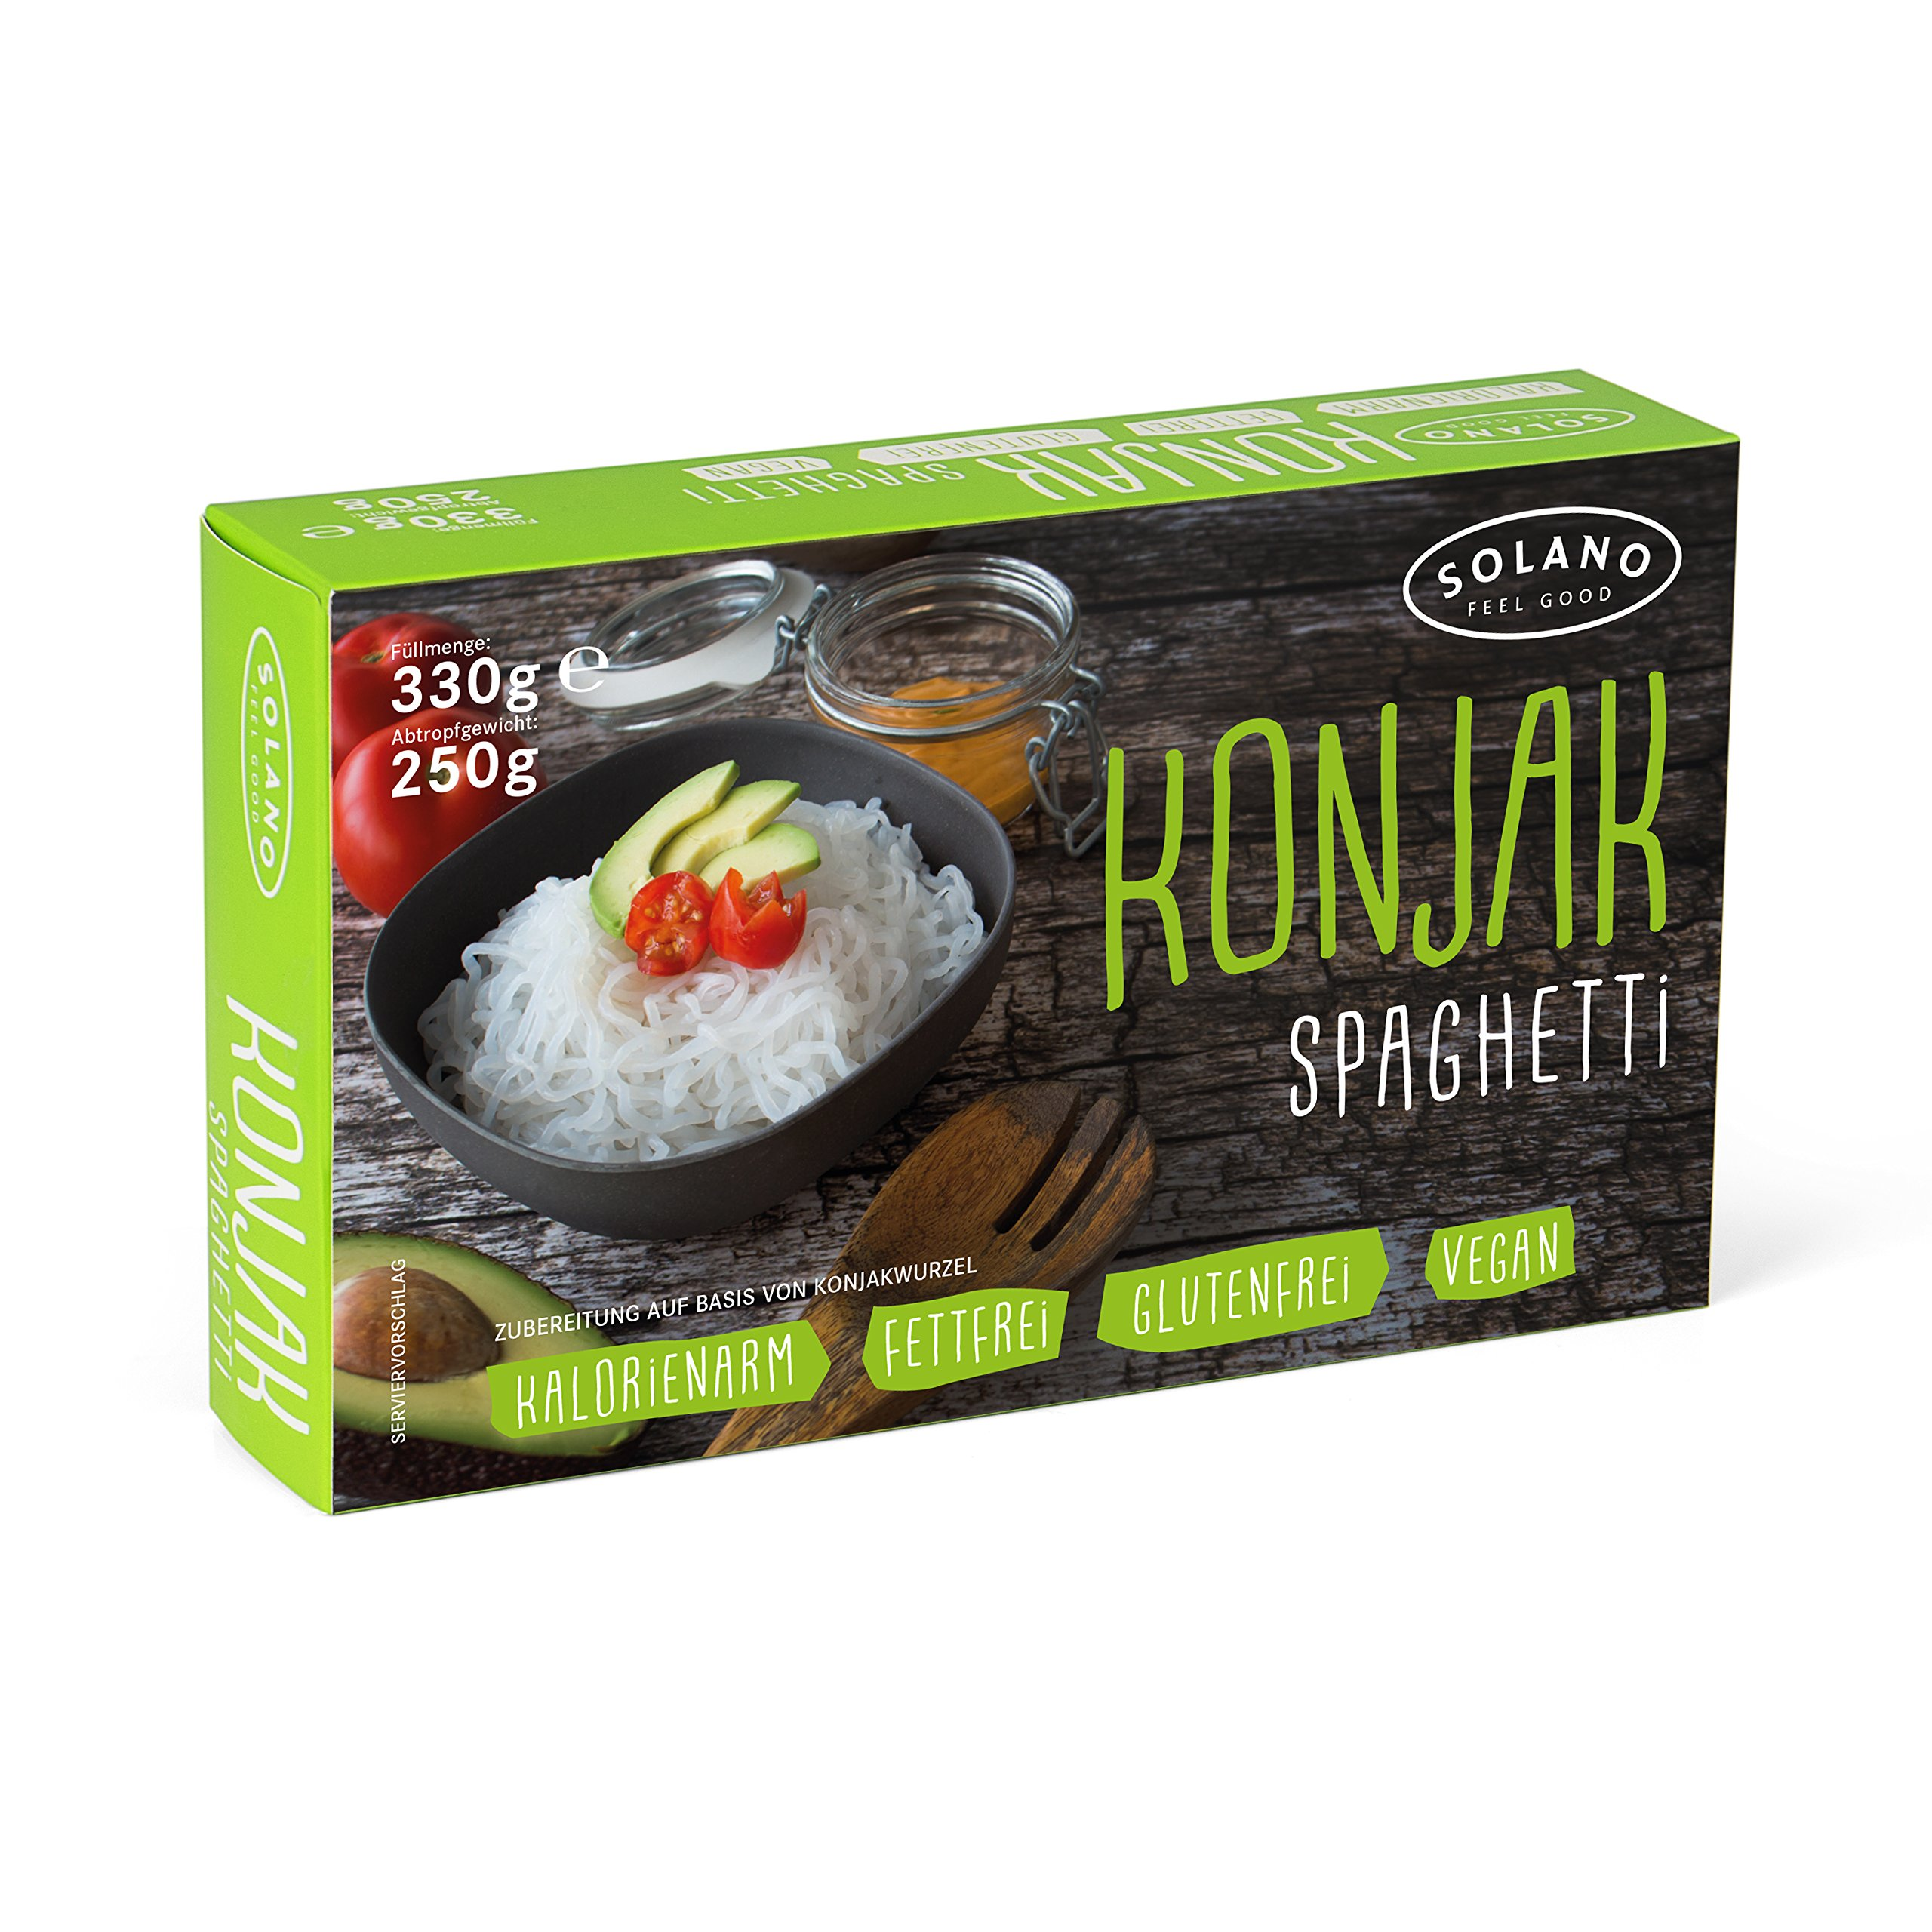 Solano Solano Konjak Noodles, Konjak Spaghetti Made from Konjak Root, Low Carb Pasta, Shirataki Noodles are Vegan, Fat-Free, Gluten-Free, and Suitable for Diets